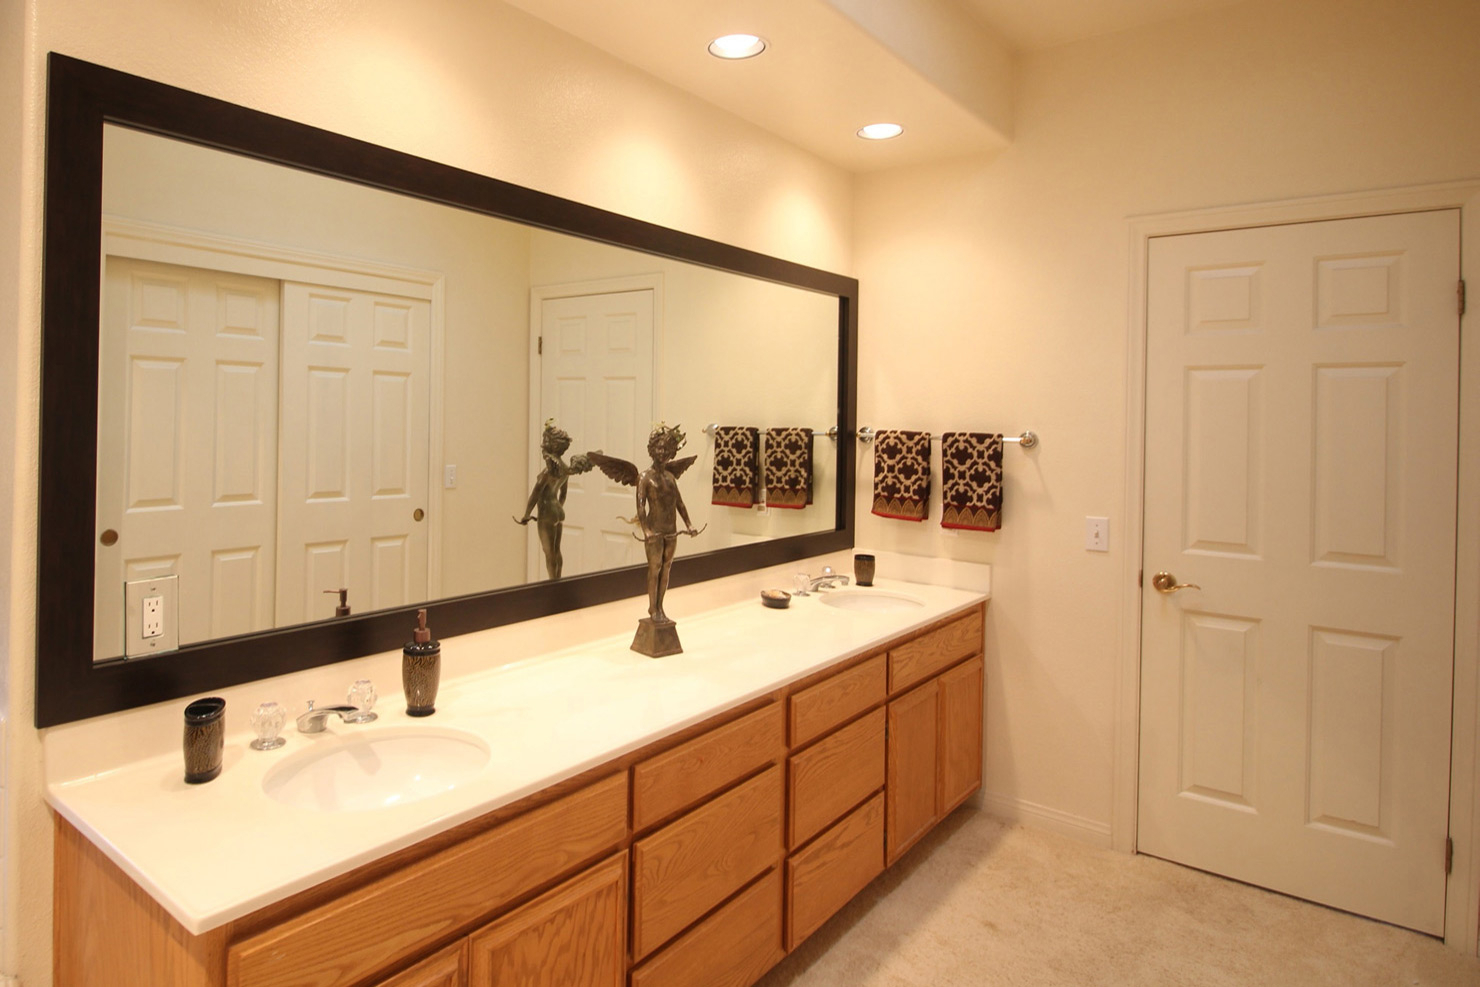 Famous Framing A Bathroom Mirror How Glass With Molding Decoration Large In Big Size Wall Mirrors (View 7 of 20)